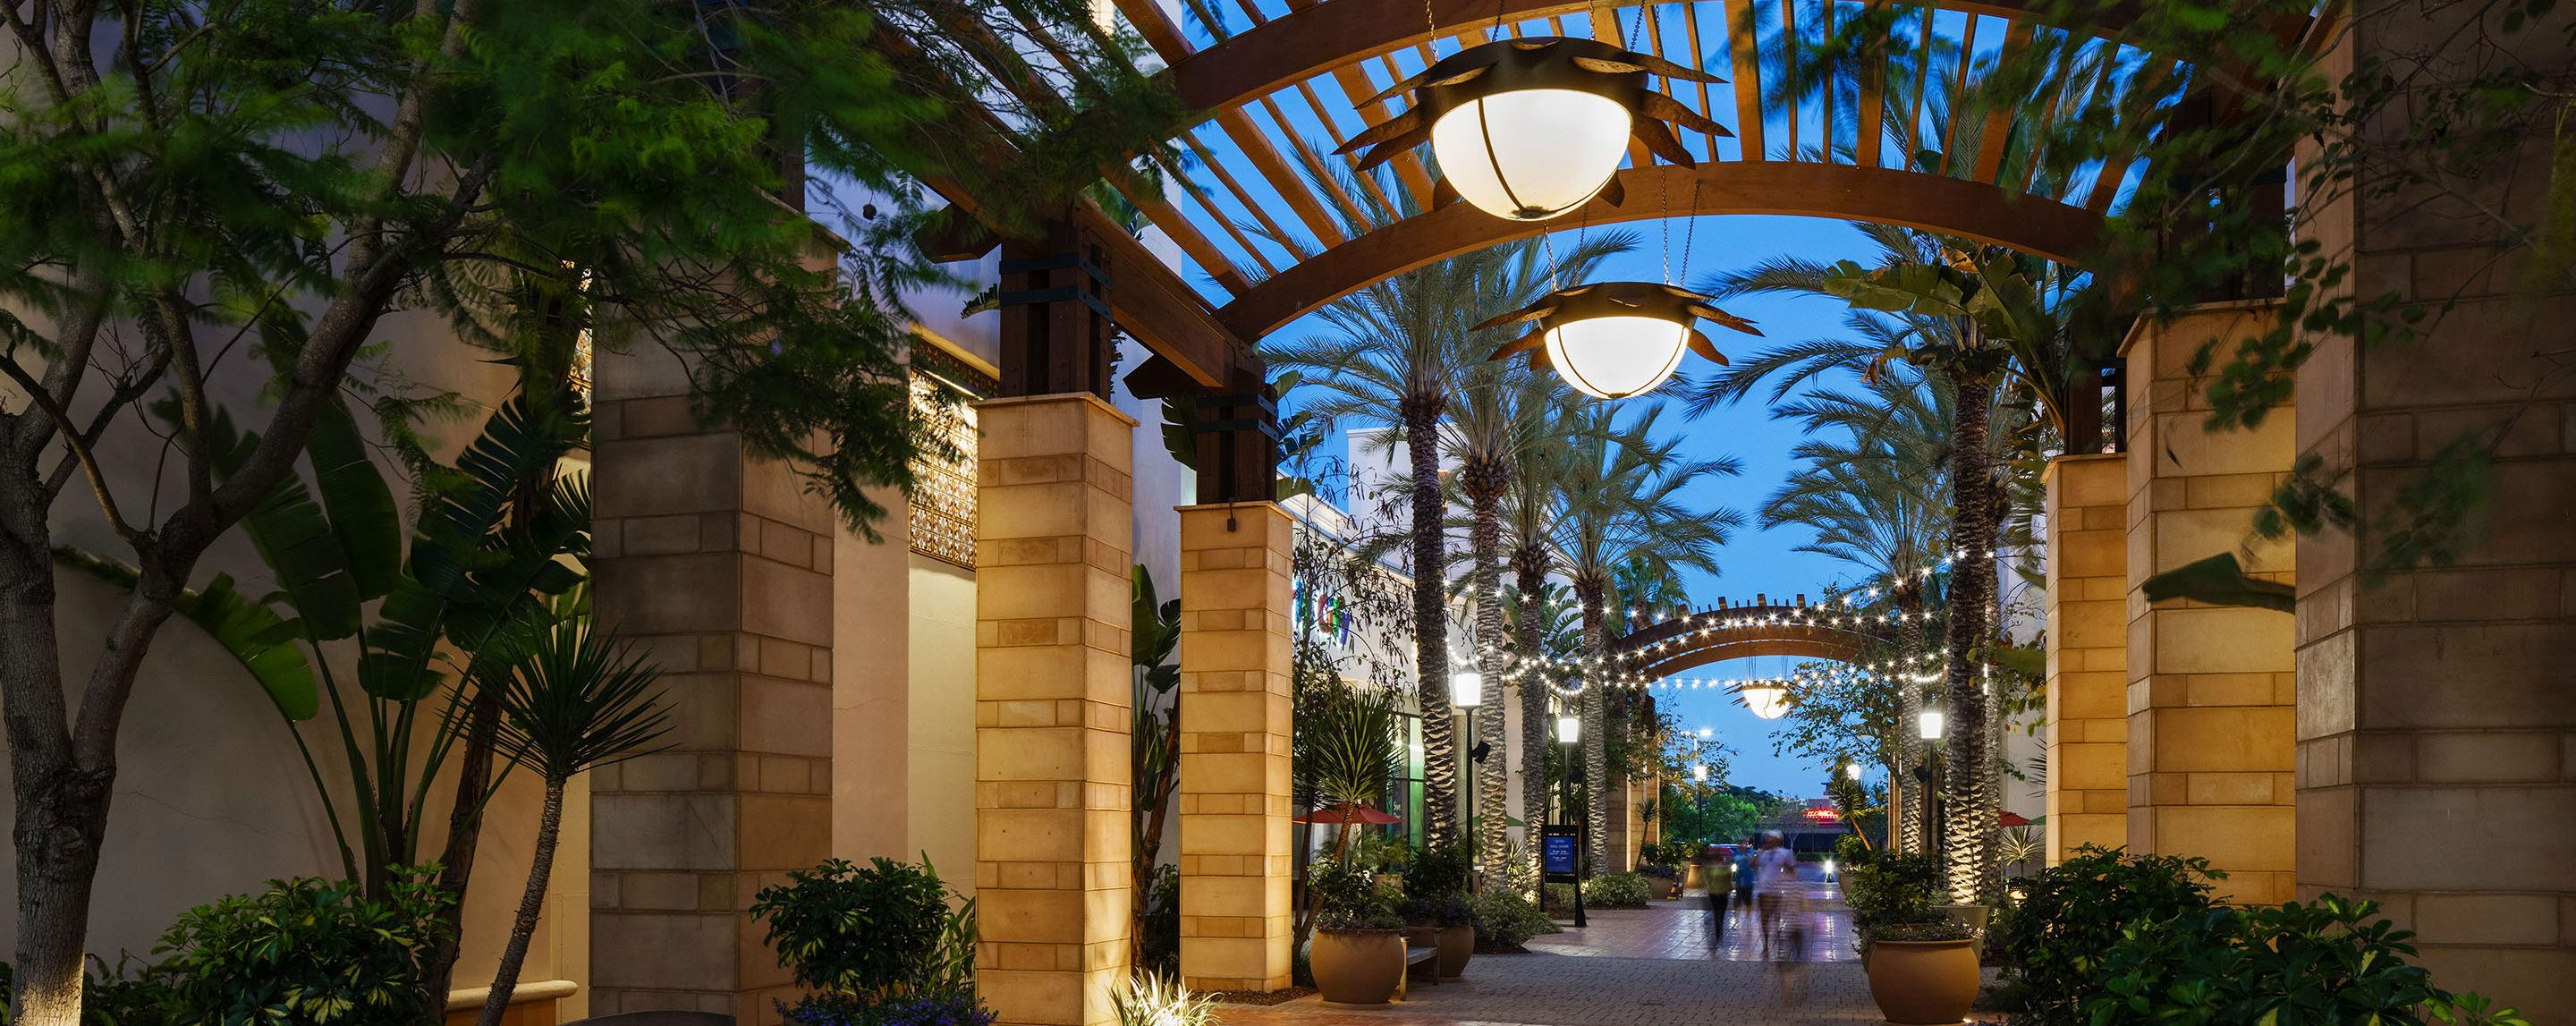 Lights are hung from an archway in an outside area filled with plants and palm trees near some buildings.